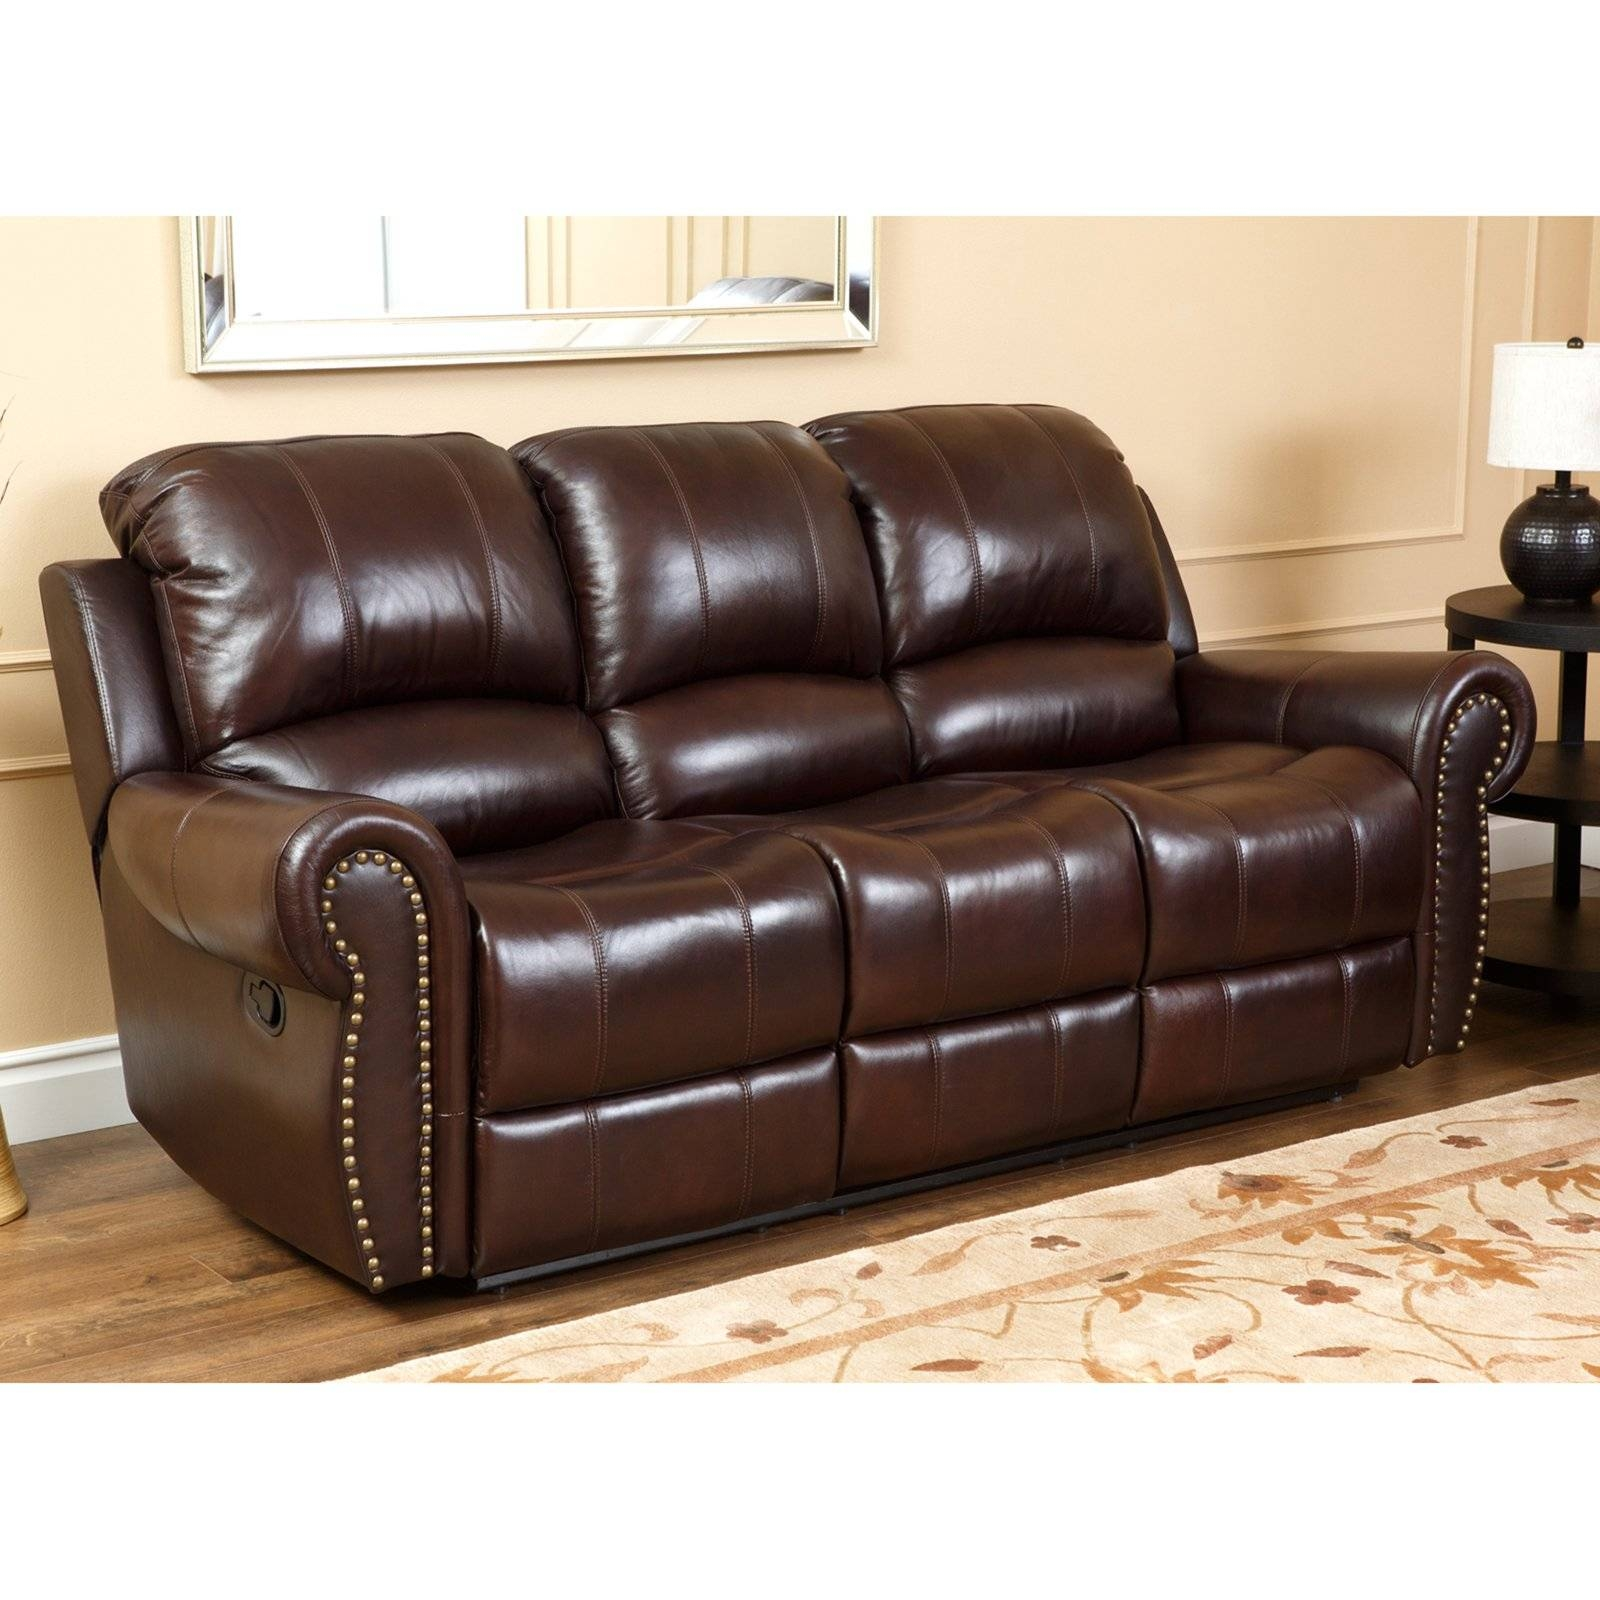 Abbyson Lexington Dark Burgundy Italian Leather Reclining Loveseat with regard to Abbyson Sofas (Image 3 of 15)